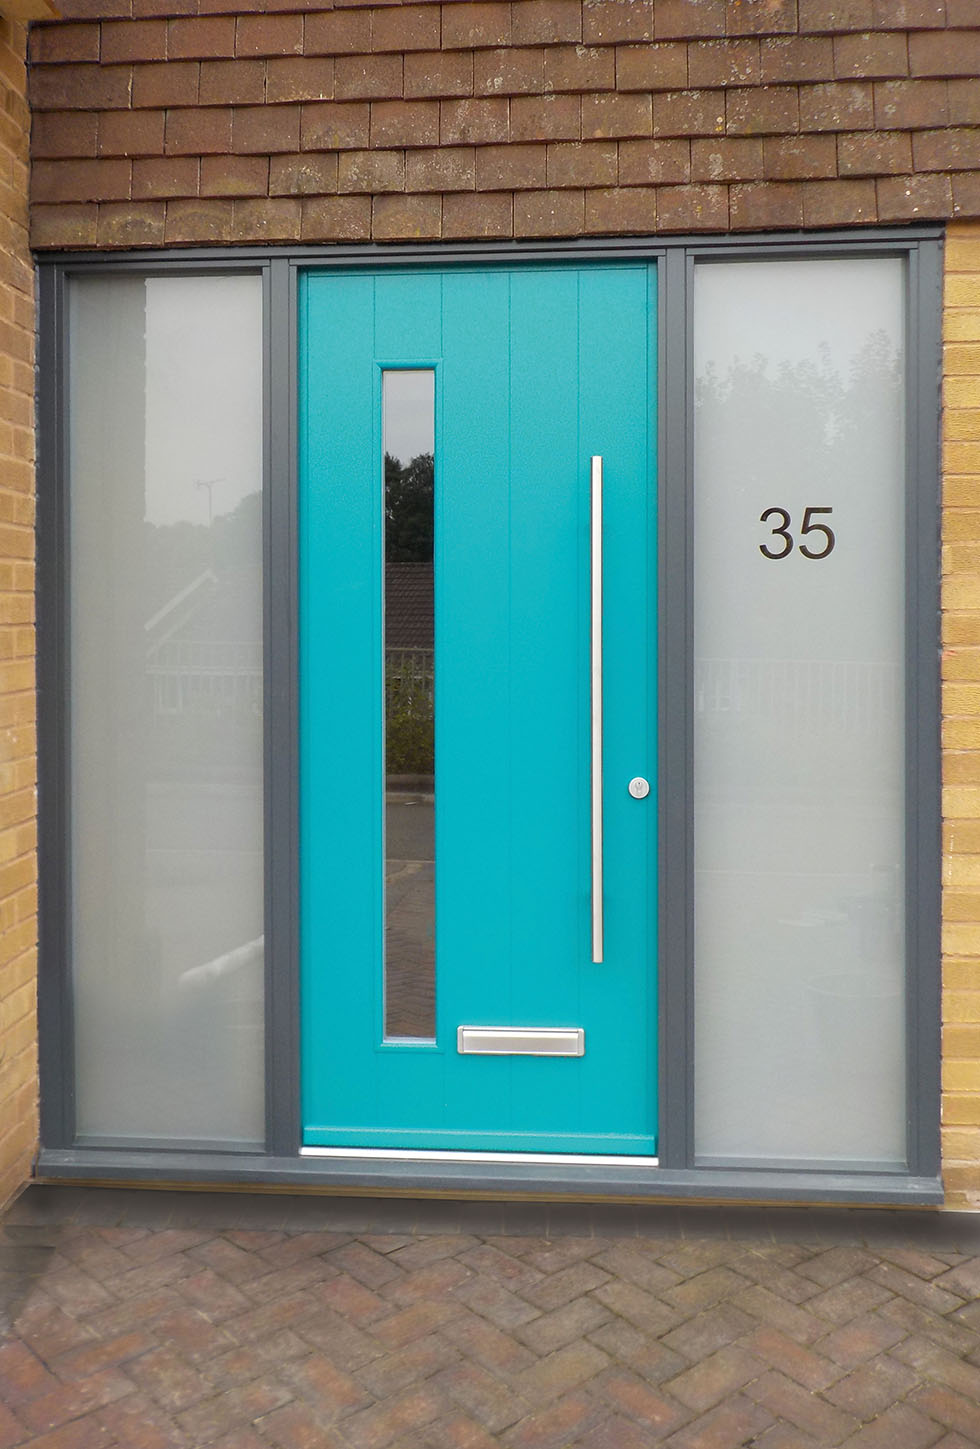 Kloeber Timber FunkyFront Door panel Bonn pained RAL 5021 Water Blue, Frame 9 painted RAL 7016 Anthracite Grey Kloeber 43340